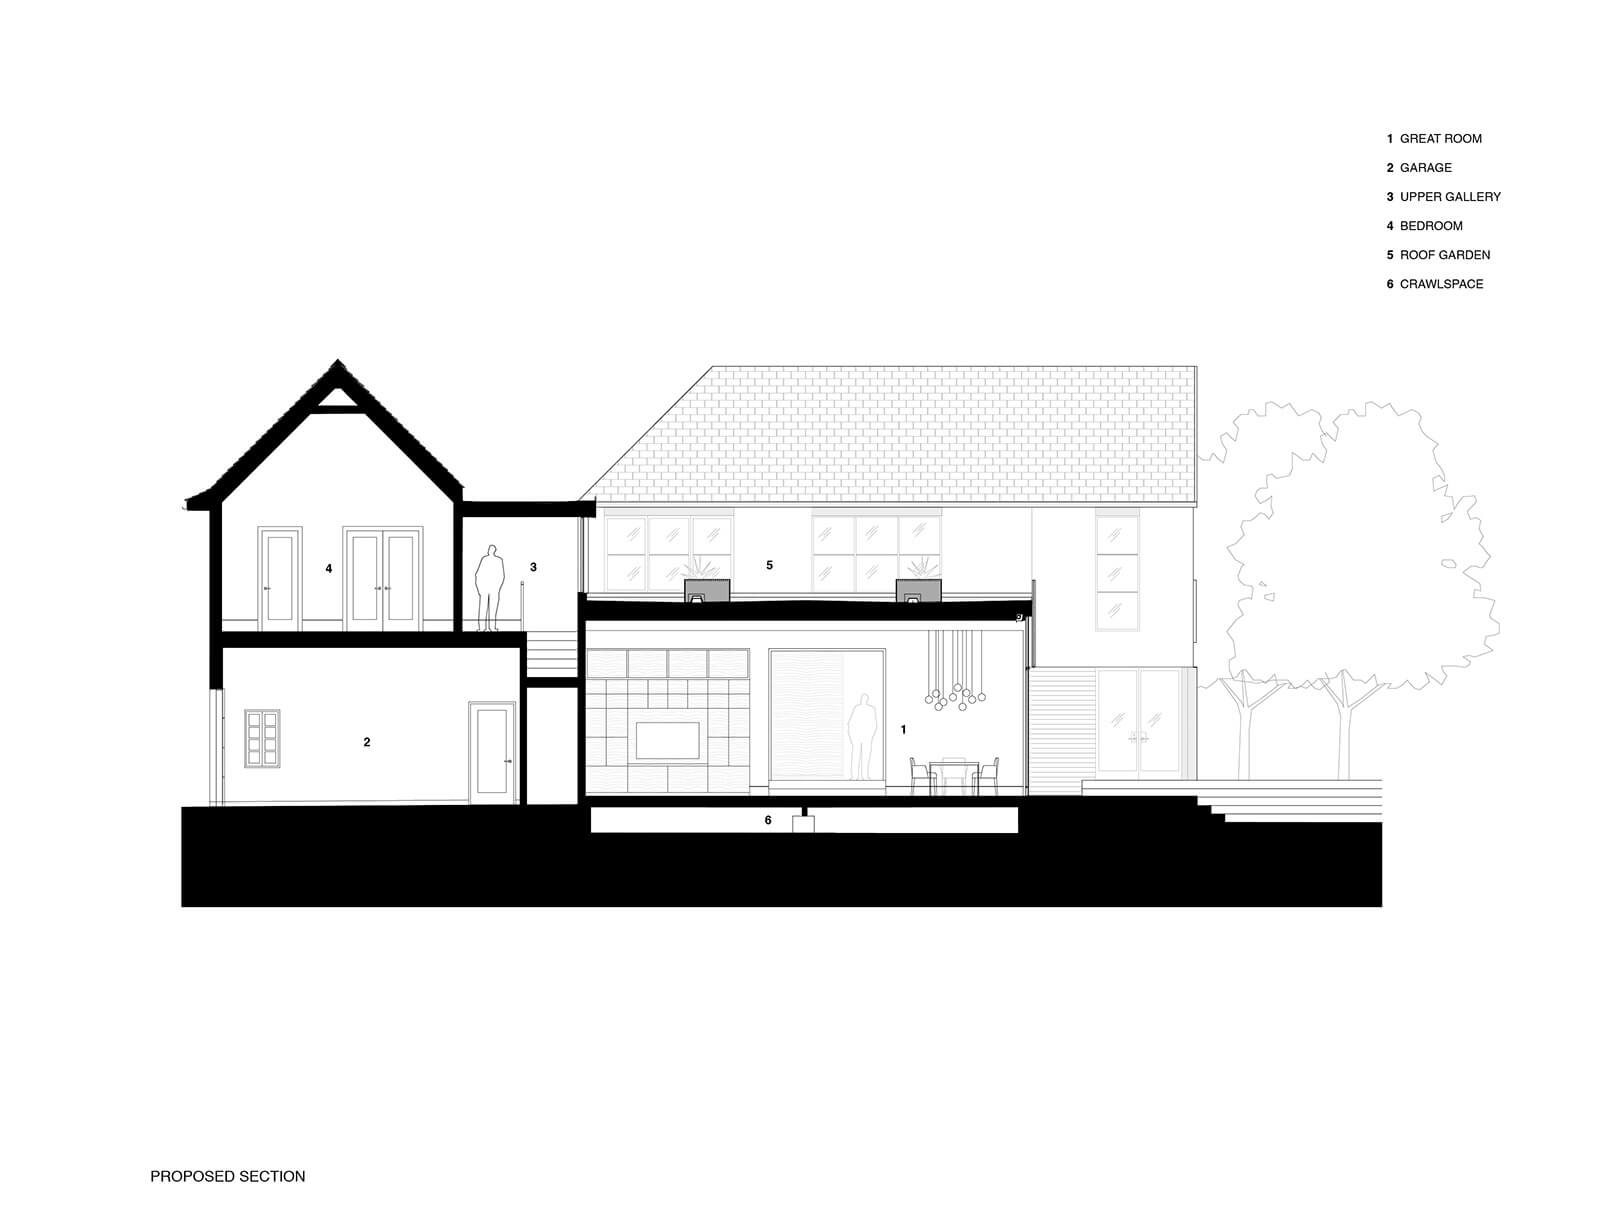 studio vara residential hillsborough drawing section